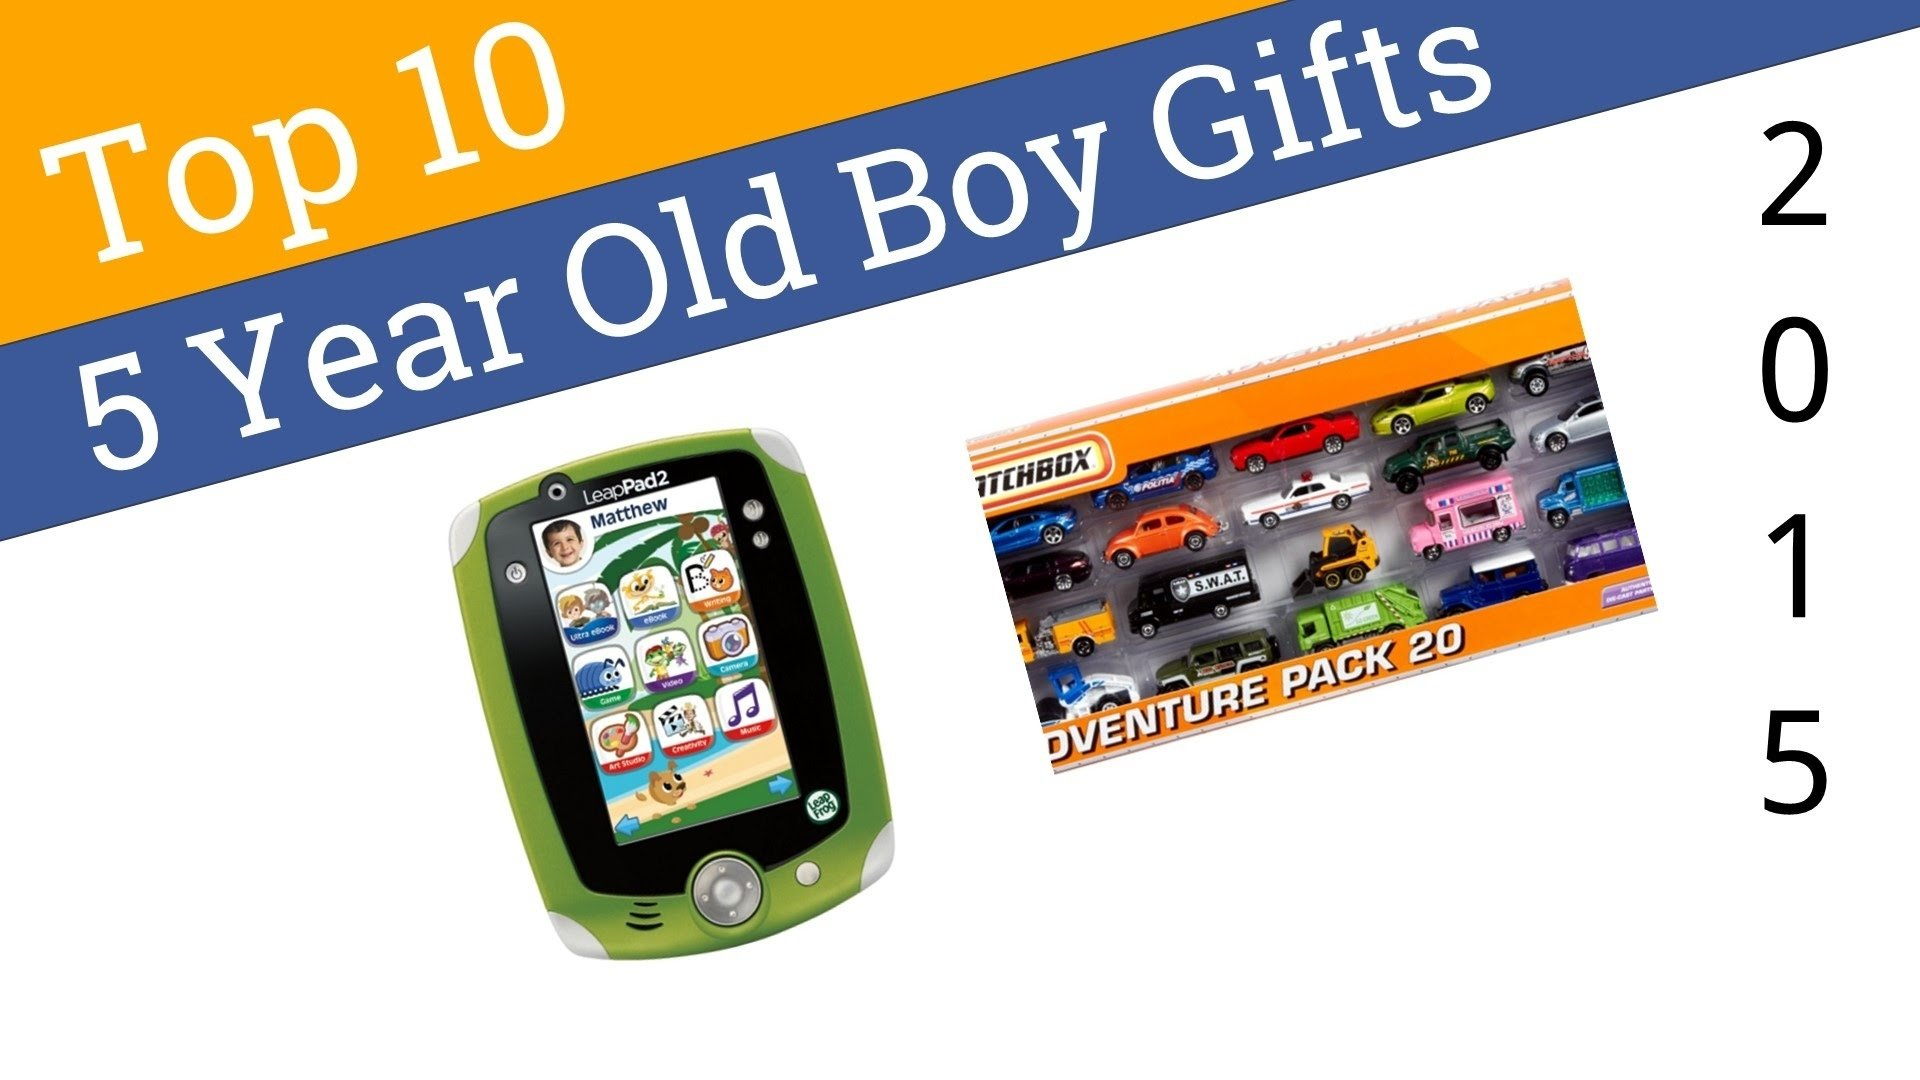 10 Unique Christmas Gift Ideas For 5 Year Old Boy 10 best 5 year old boy gifts 2015 youtube 6 2020